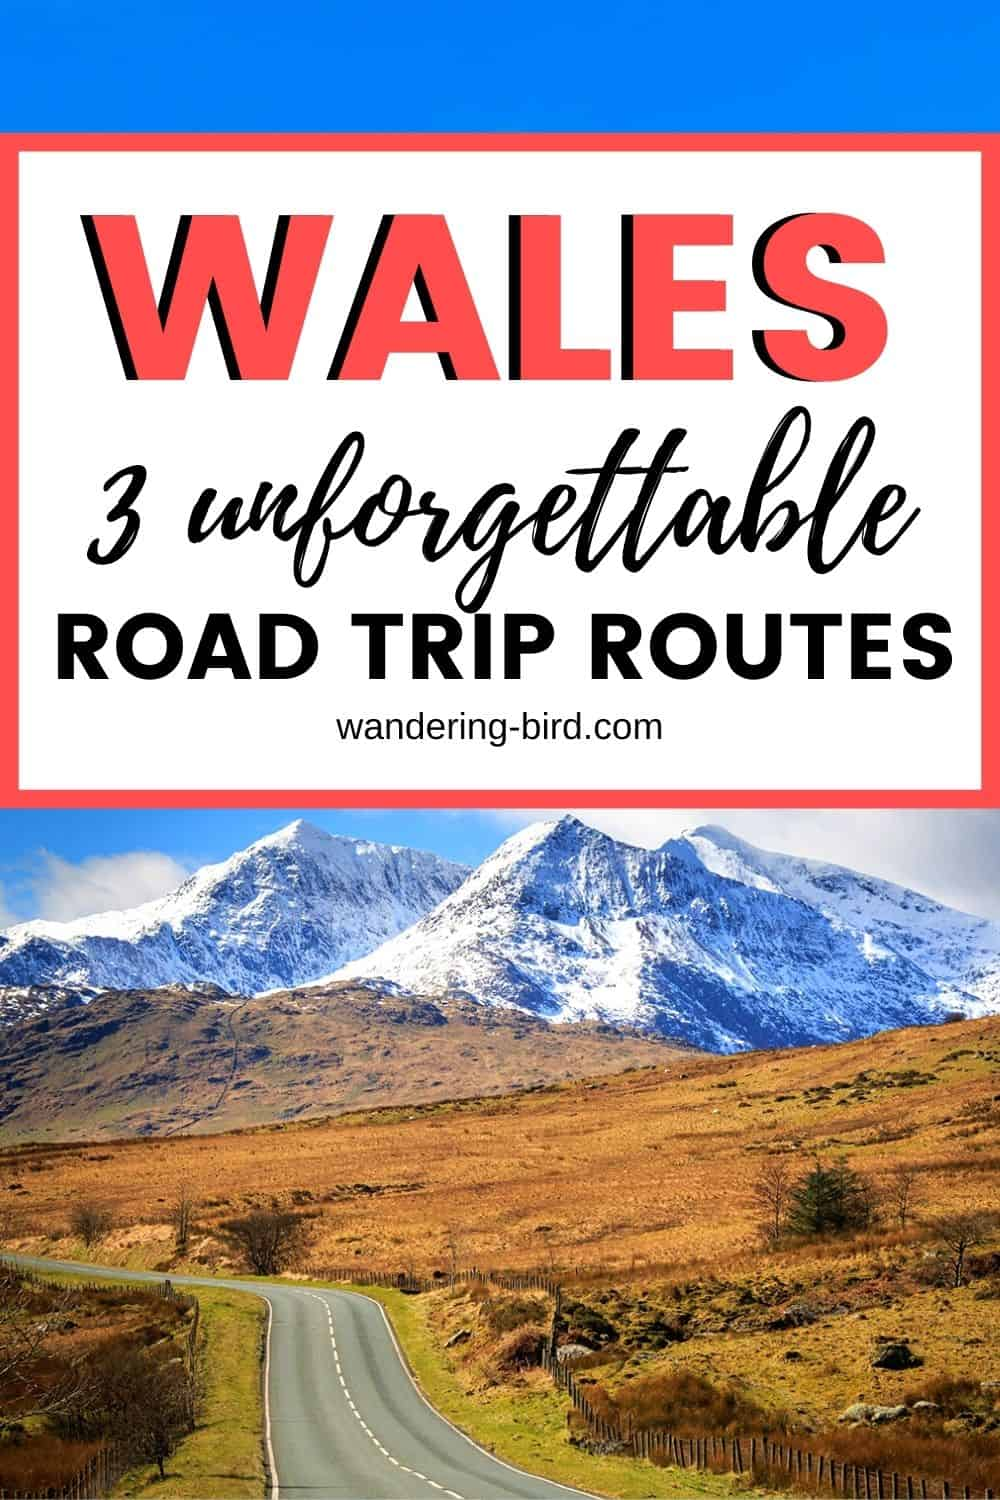 Planning a road trip to Wales with a car, motorhome, campervan or caravan? Want to know more about the Wales Way- the national driving routes in Wales? Confused about which one is best for you? Here's everything you need to know about touring the Wales Way with a vehicle, details about the three routes (North Wales Way, Cambrian Way and Coastal Way- with map!), plus places in Wales to visit and where to stay.